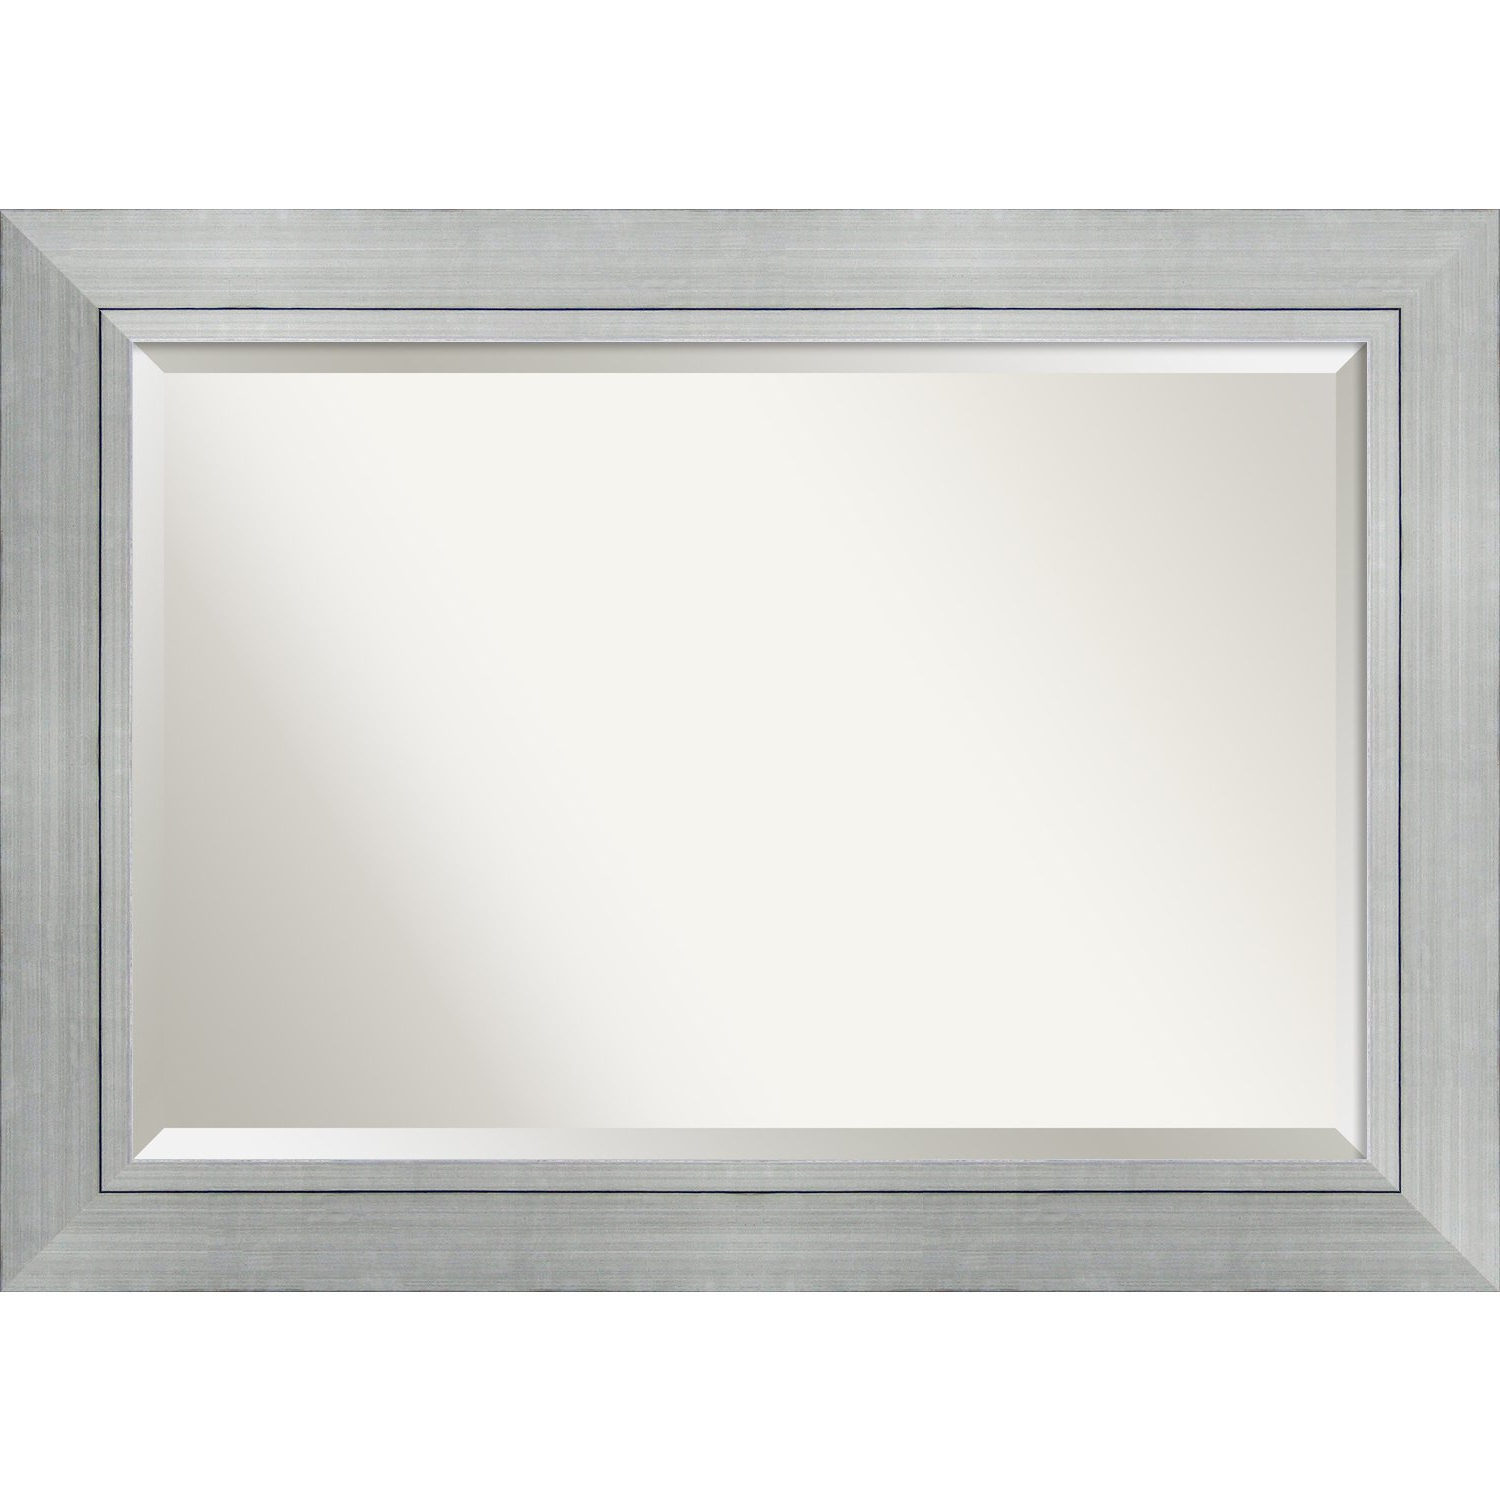 """Most Up To Date Bathroom Mirror Extra Large, Fits Standard 30"""" To 48"""" Cabinet, Romano  Silver: Outer Size 43 X 31 Throughout Extra Large Framed Wall Mirrors (View 19 of 20)"""